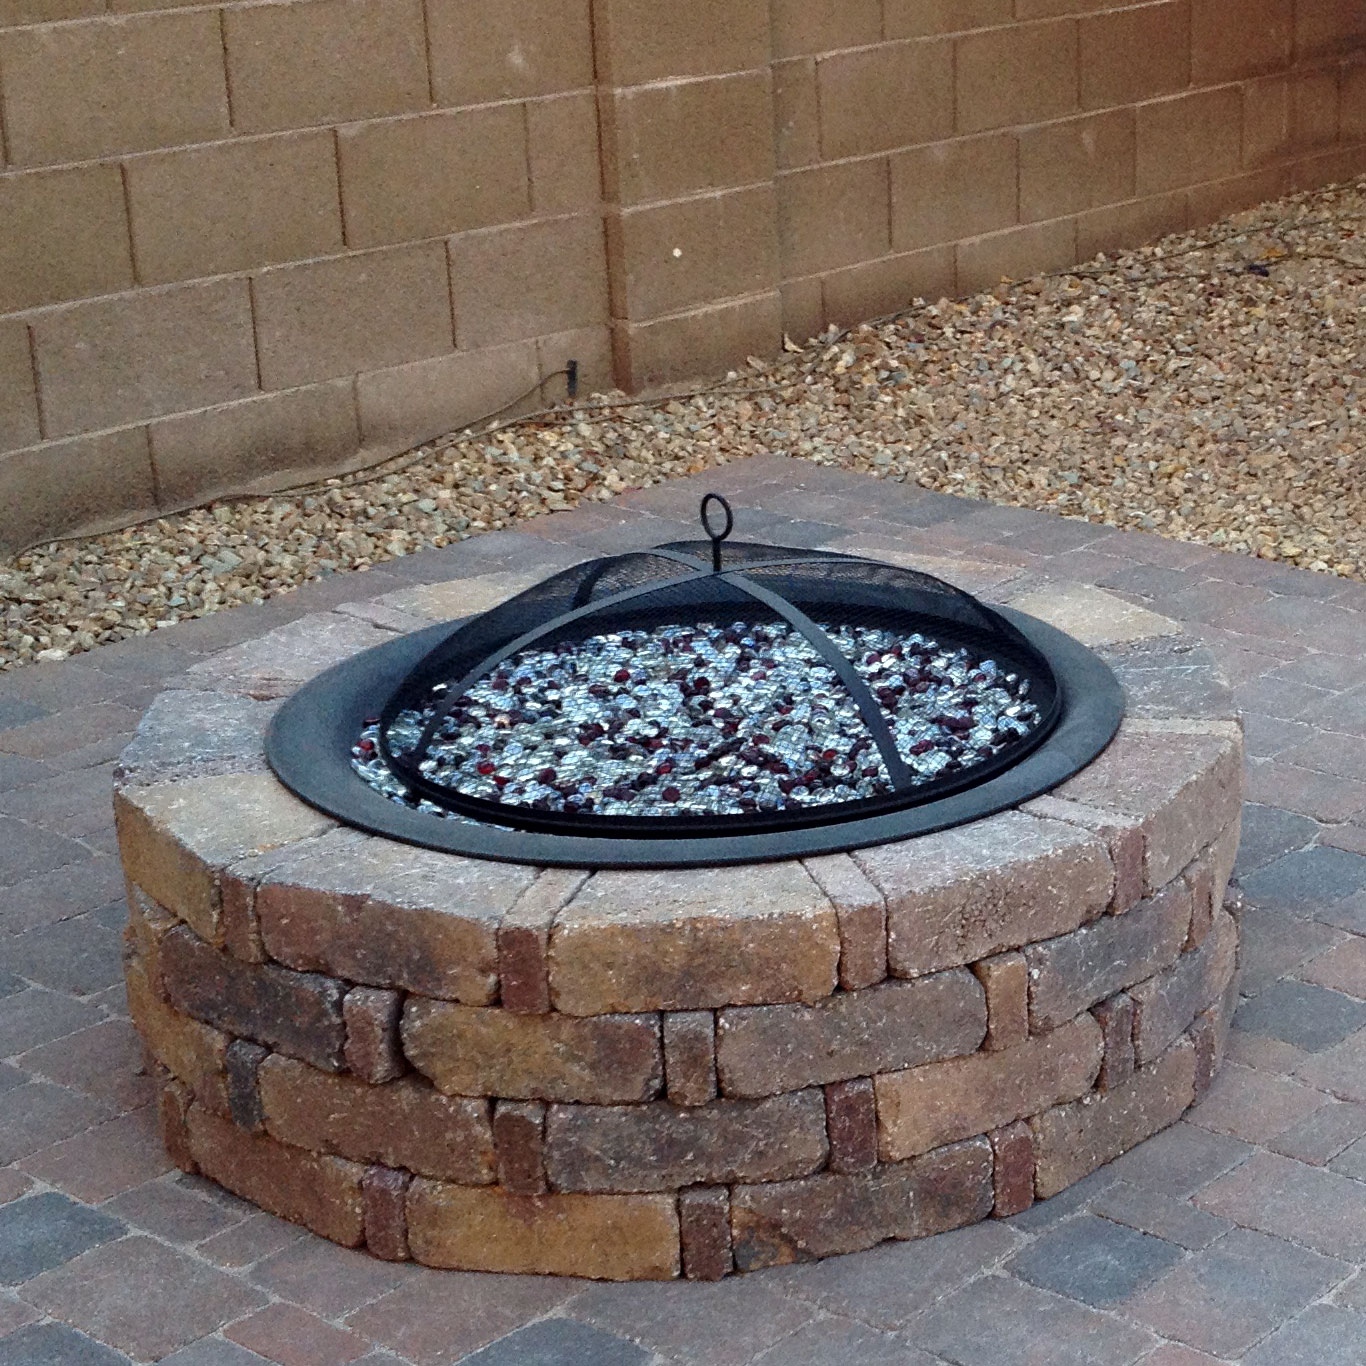 DIY-Fire-Pit-In-Daylight.jpg